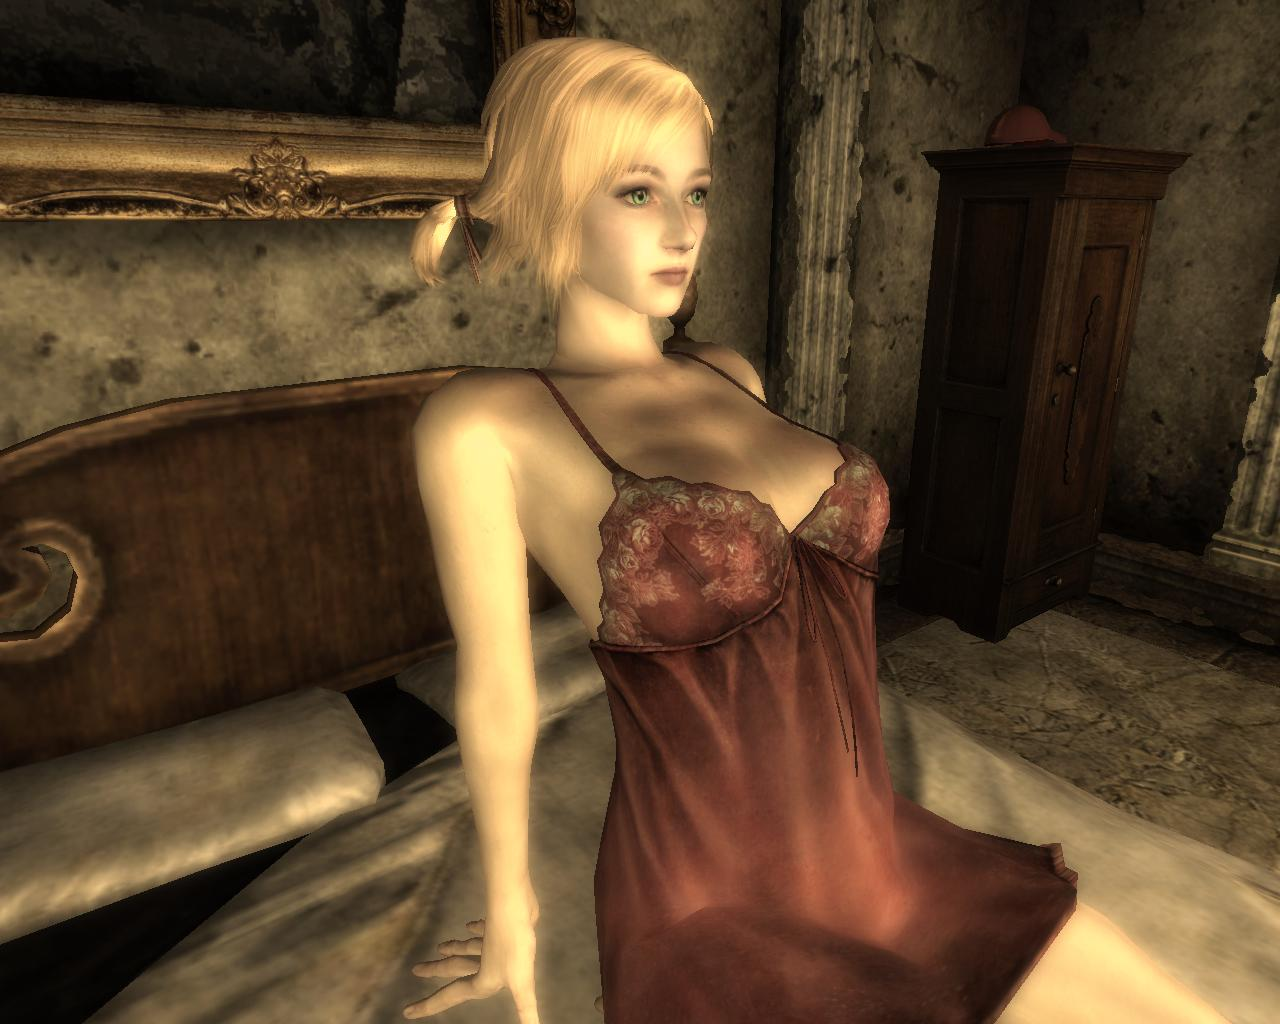 Fallout 3 naked babes mod naked photo